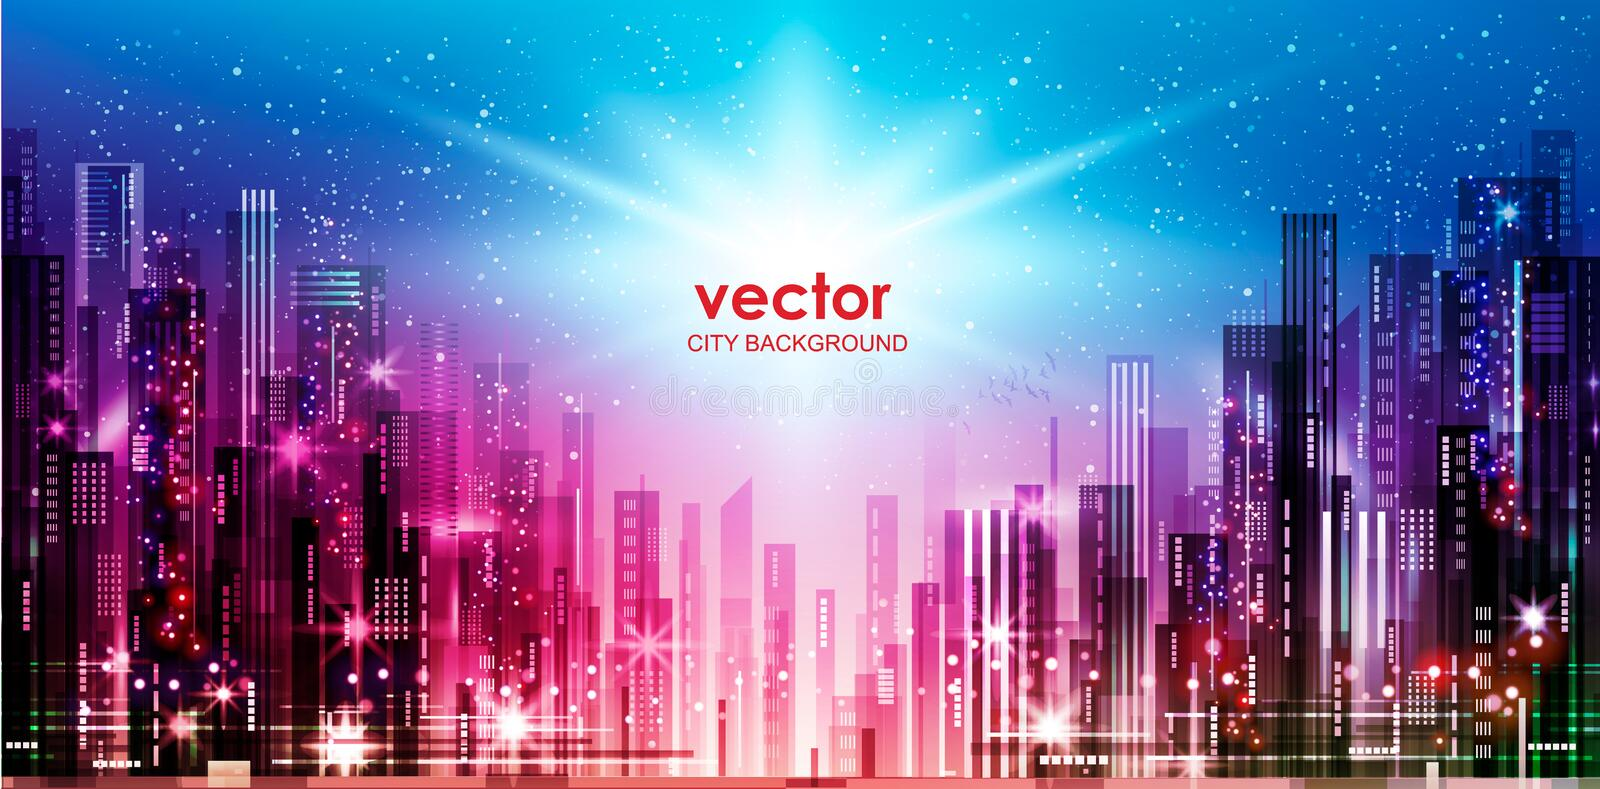 Illustration of the night city with lights switched on. Vector background of the night city with blurred lights, vector illustration royalty free illustration